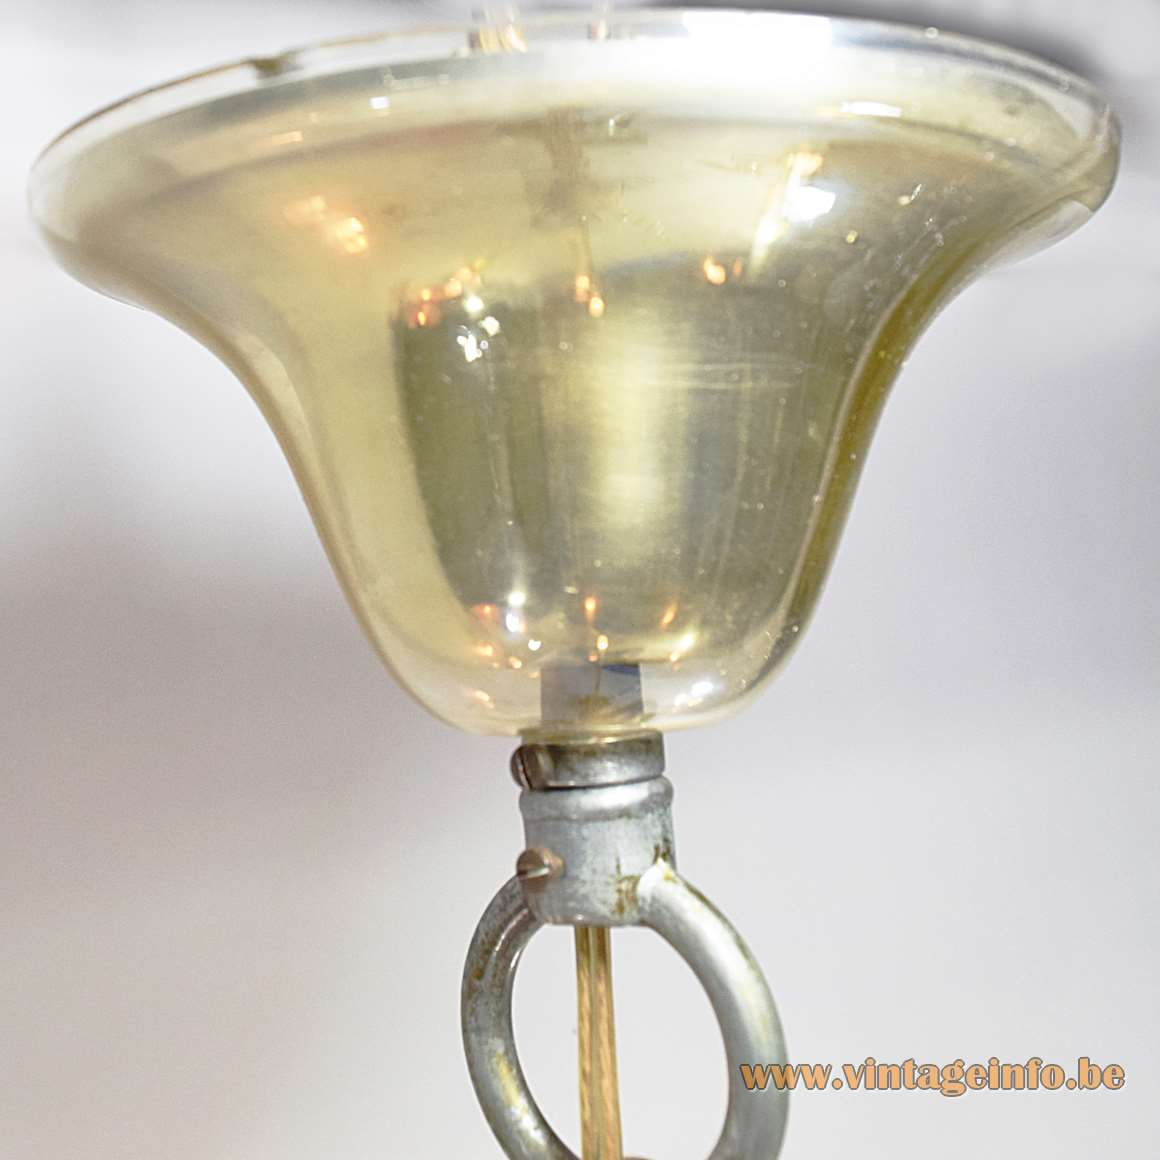 Murano amber glass 6 arms classic chandelier curved rods hand blown Venice gilded brass 1960s 1970s